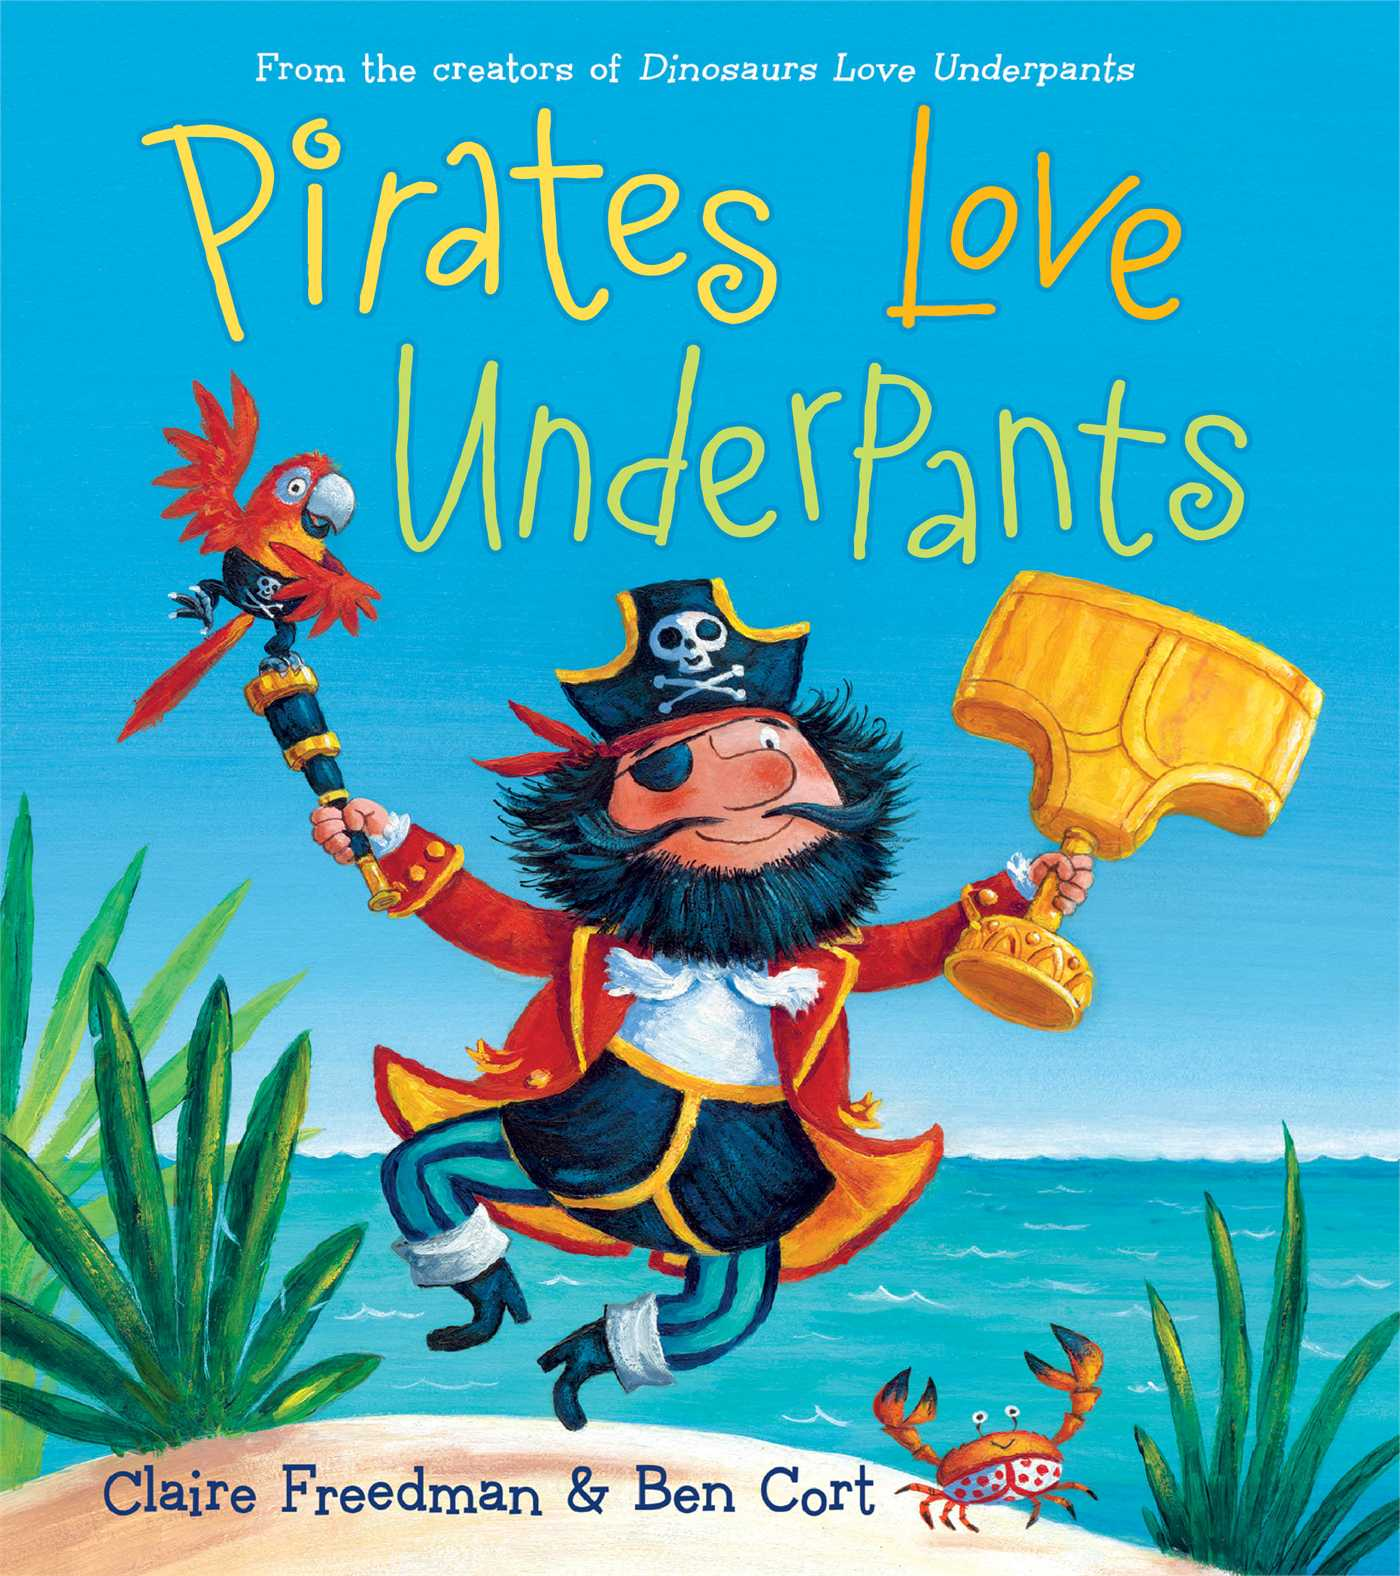 Pirates-love-underpants-9781442485129_hr